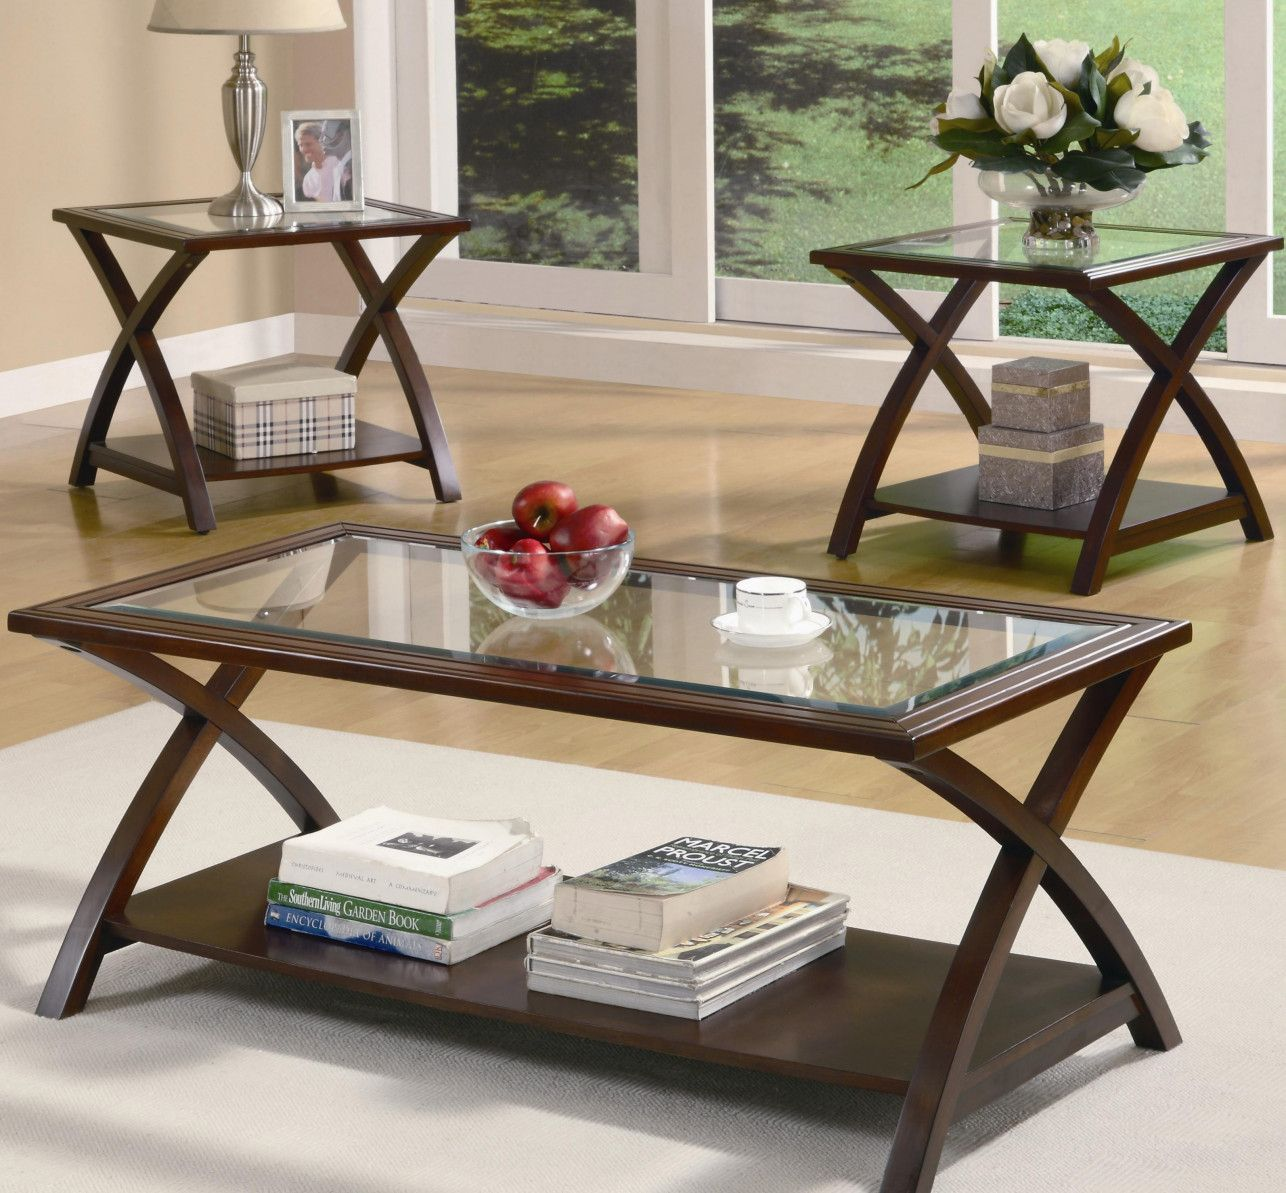 20 Elegant Ashley Furniture Glass Top Coffee Table 2018 With